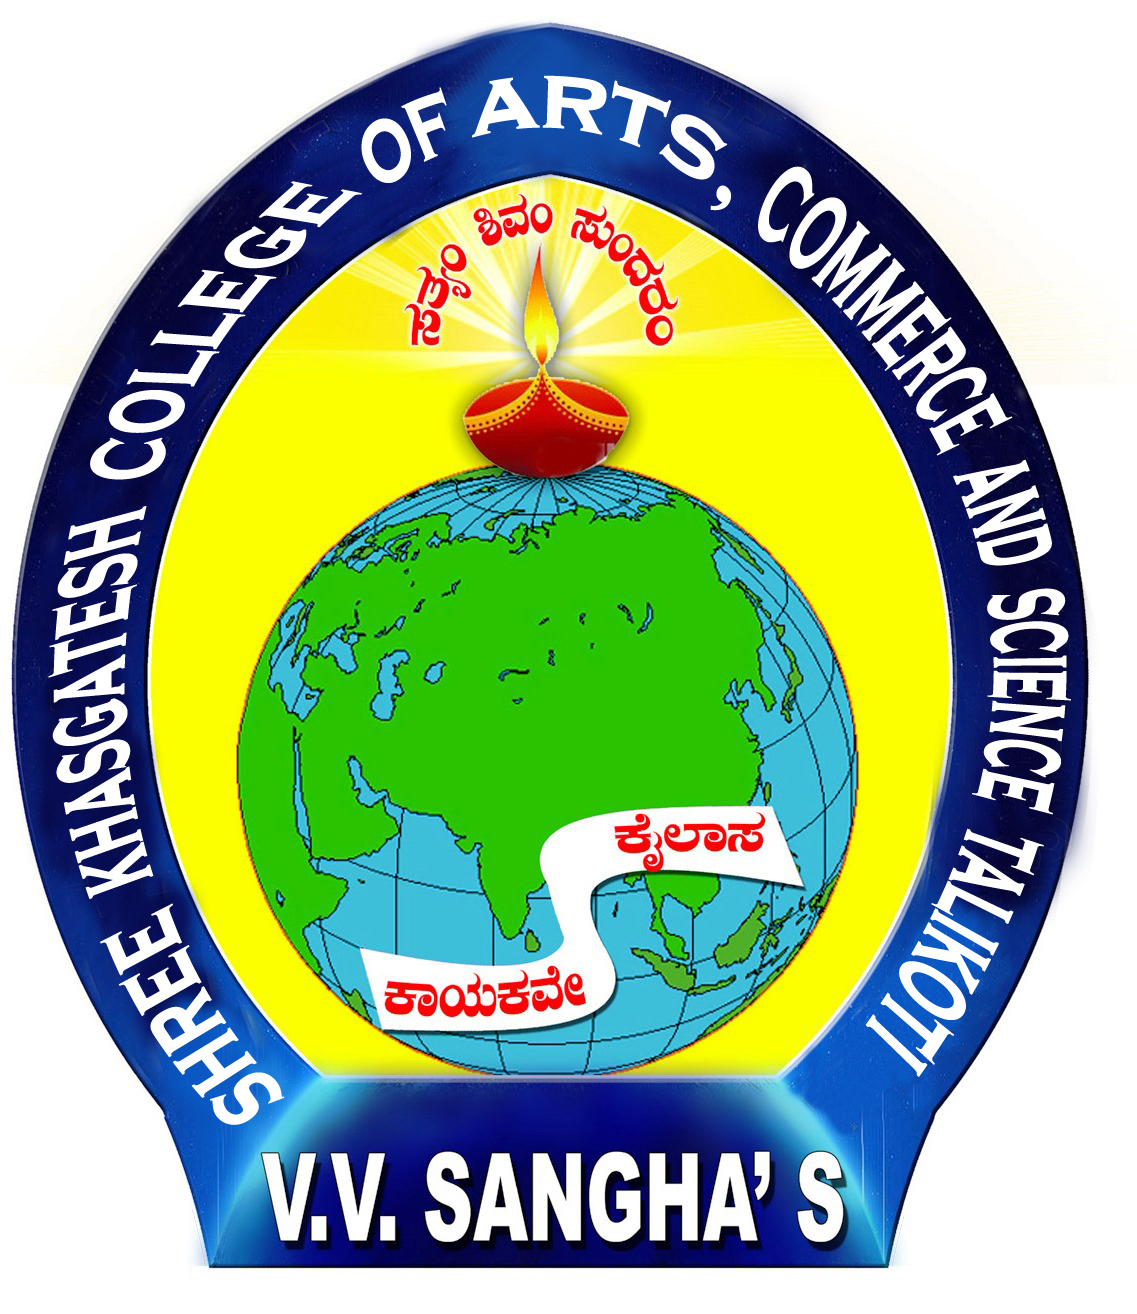 S.K. College of Arts & Commerce